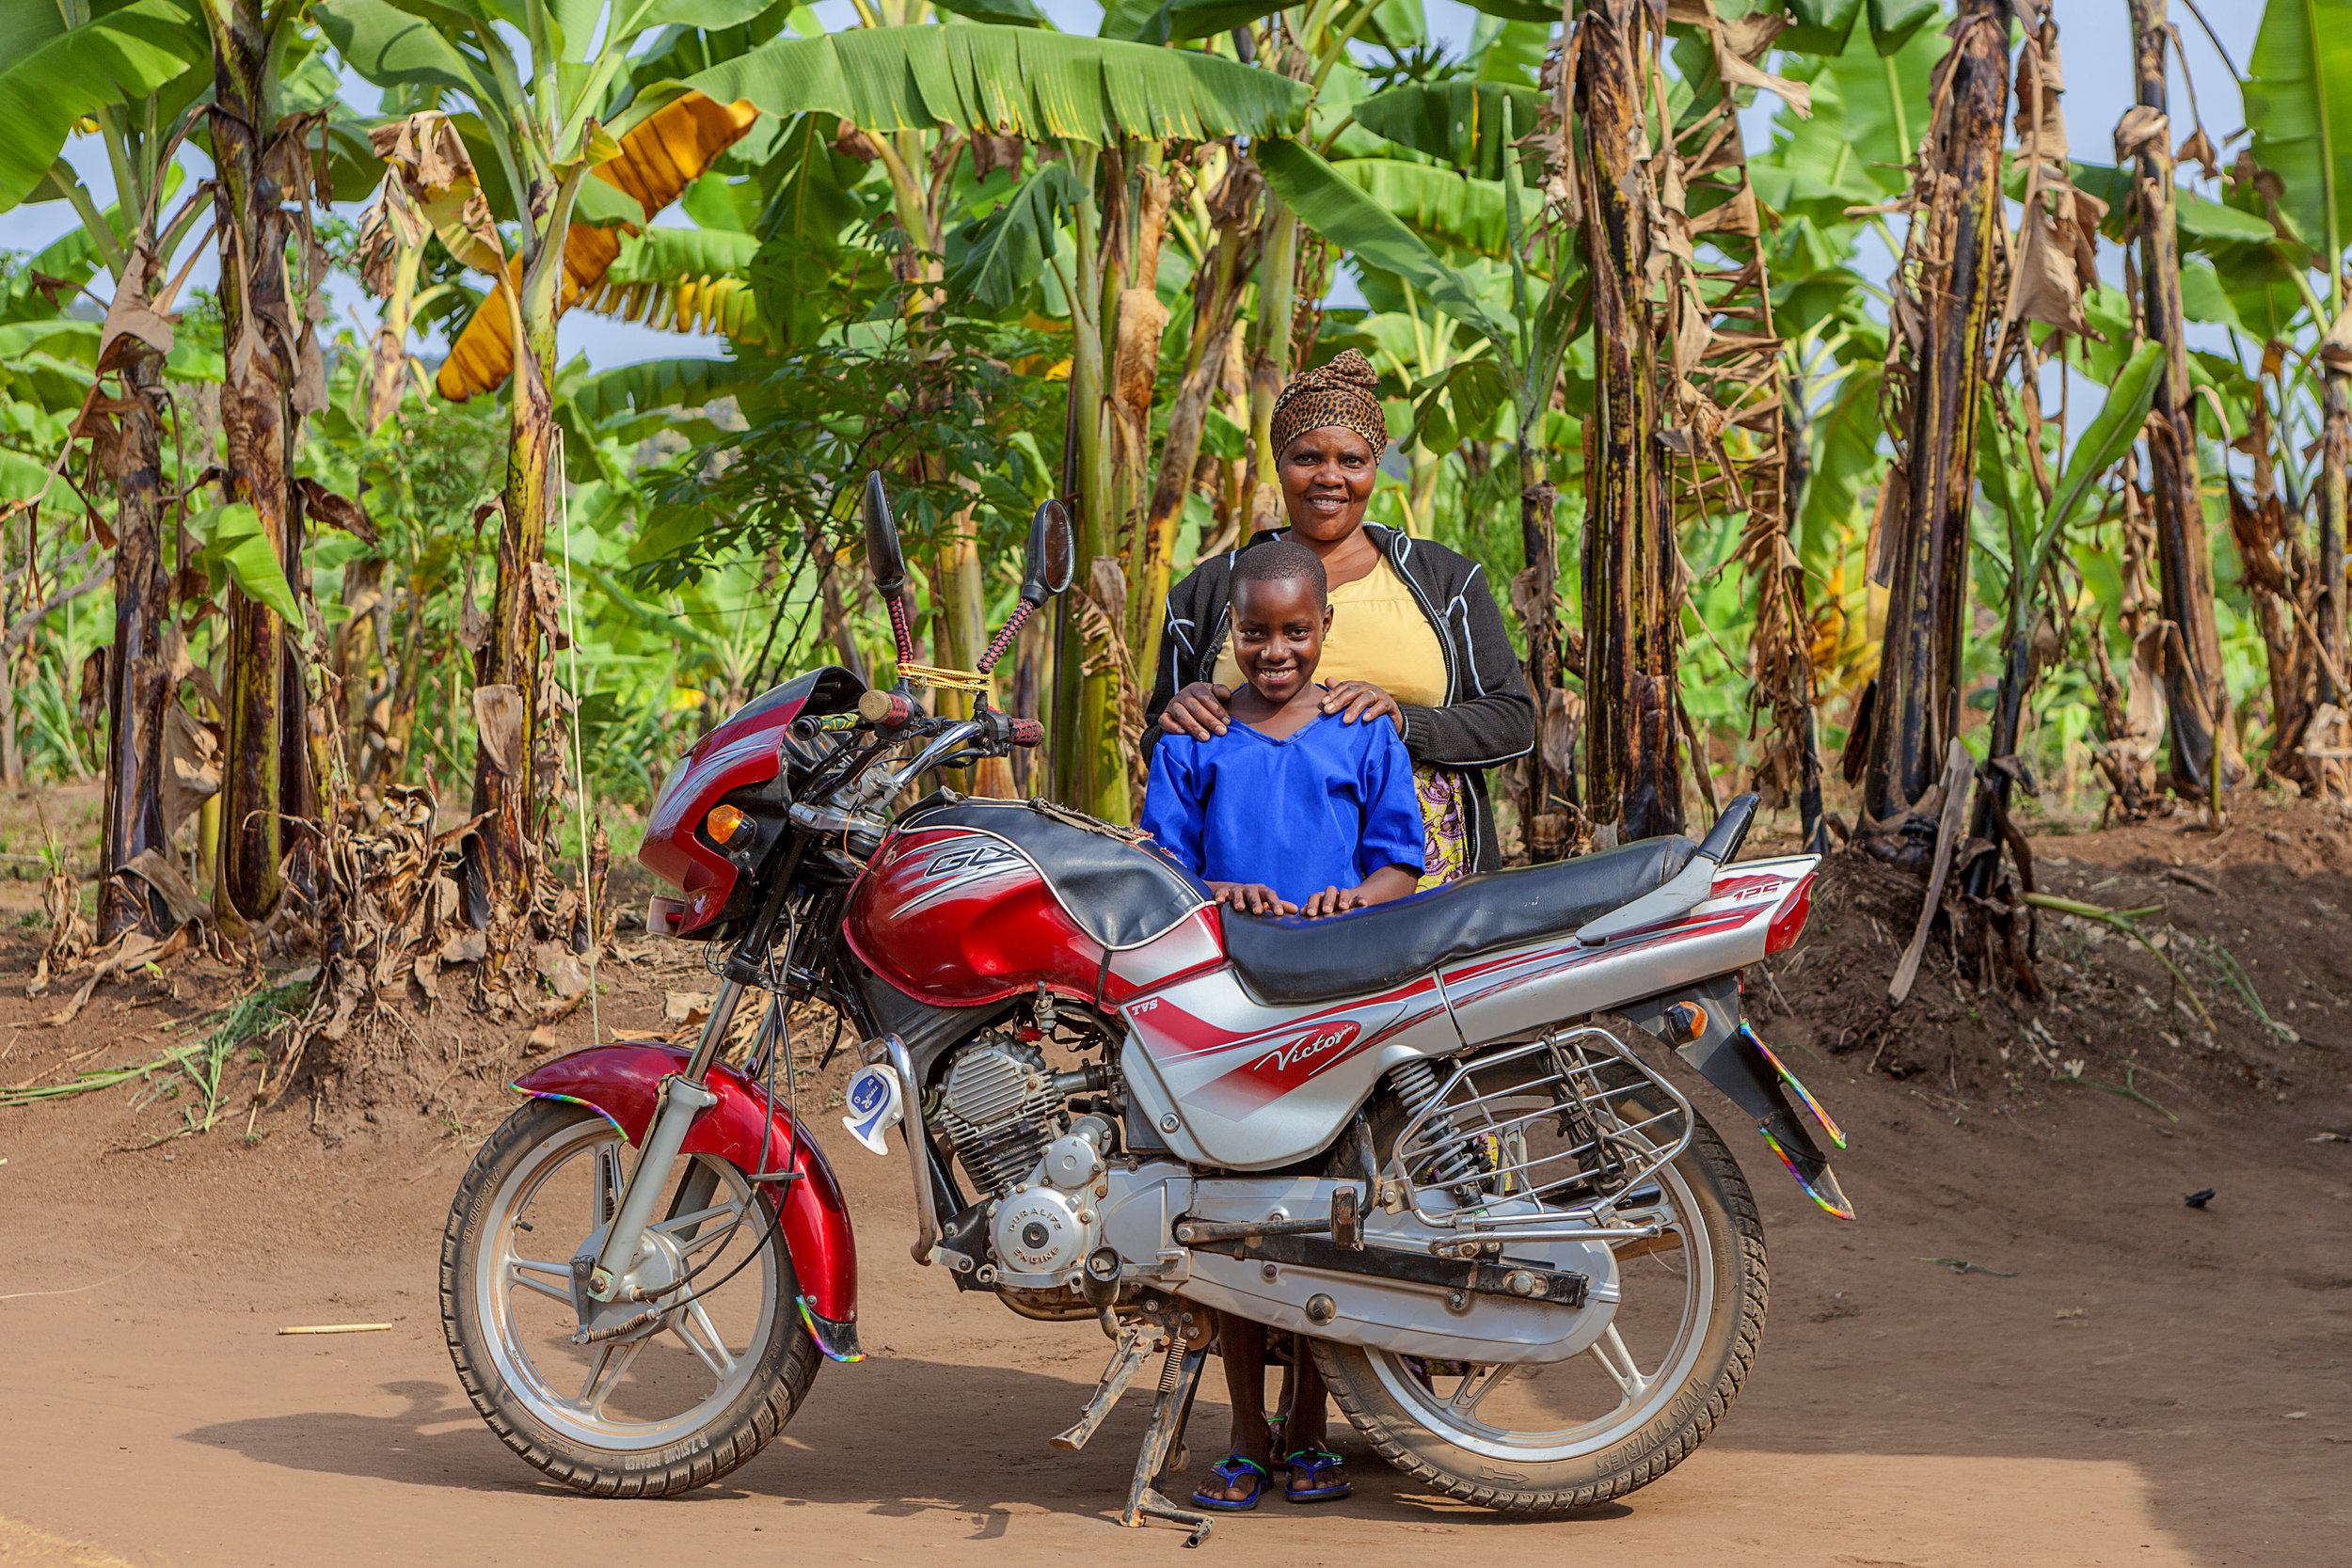 With savings from the weaving business, Monica acquired a motorcycle she uses for commercial transportation as a means of diversifying her income. USADF is committed to helping artisans like Monica to create pathways to prosperity.